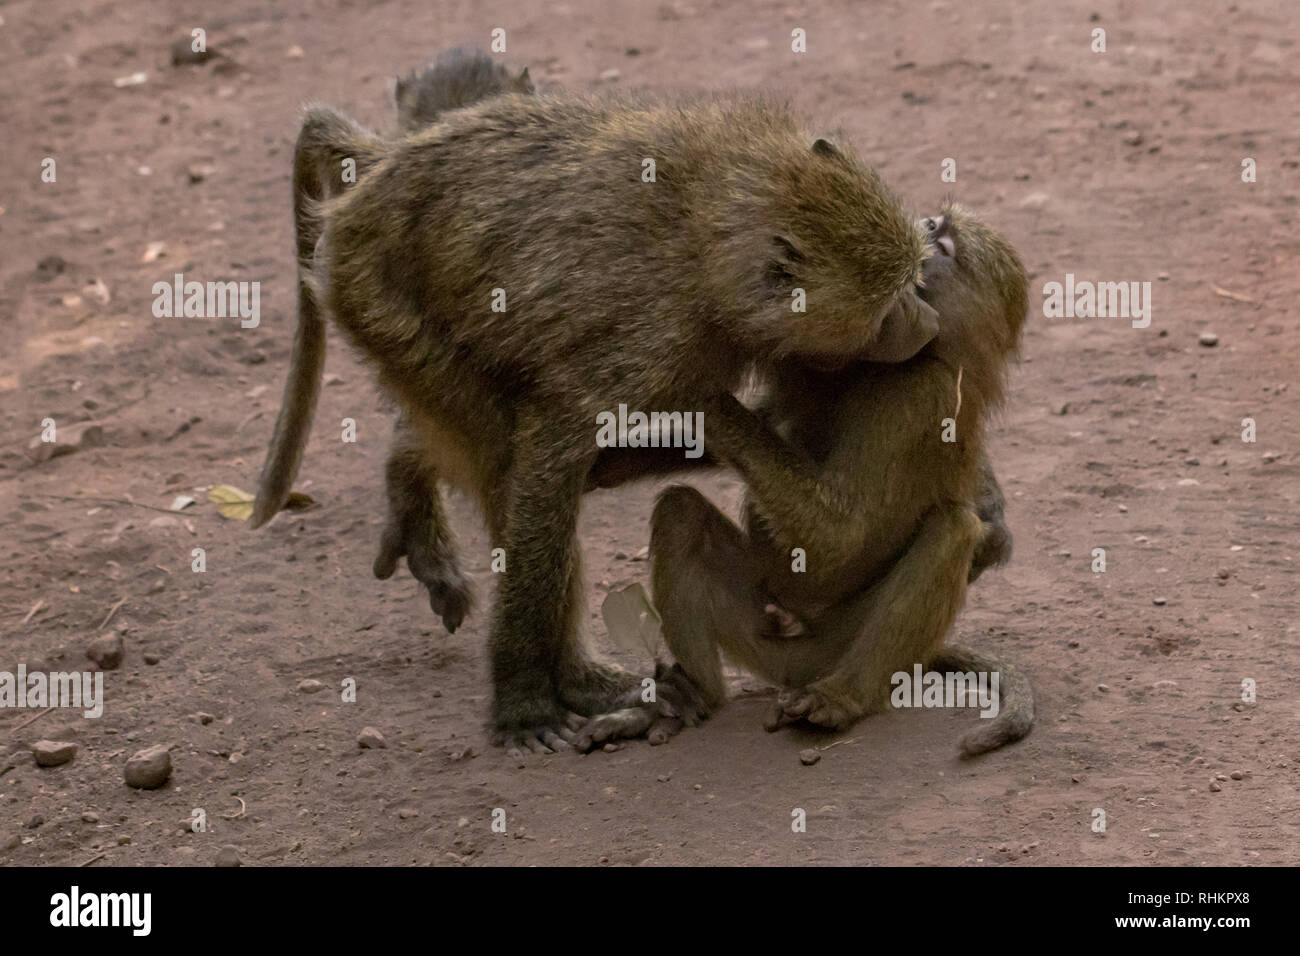 Two baboons cleaning each other - Stock Image